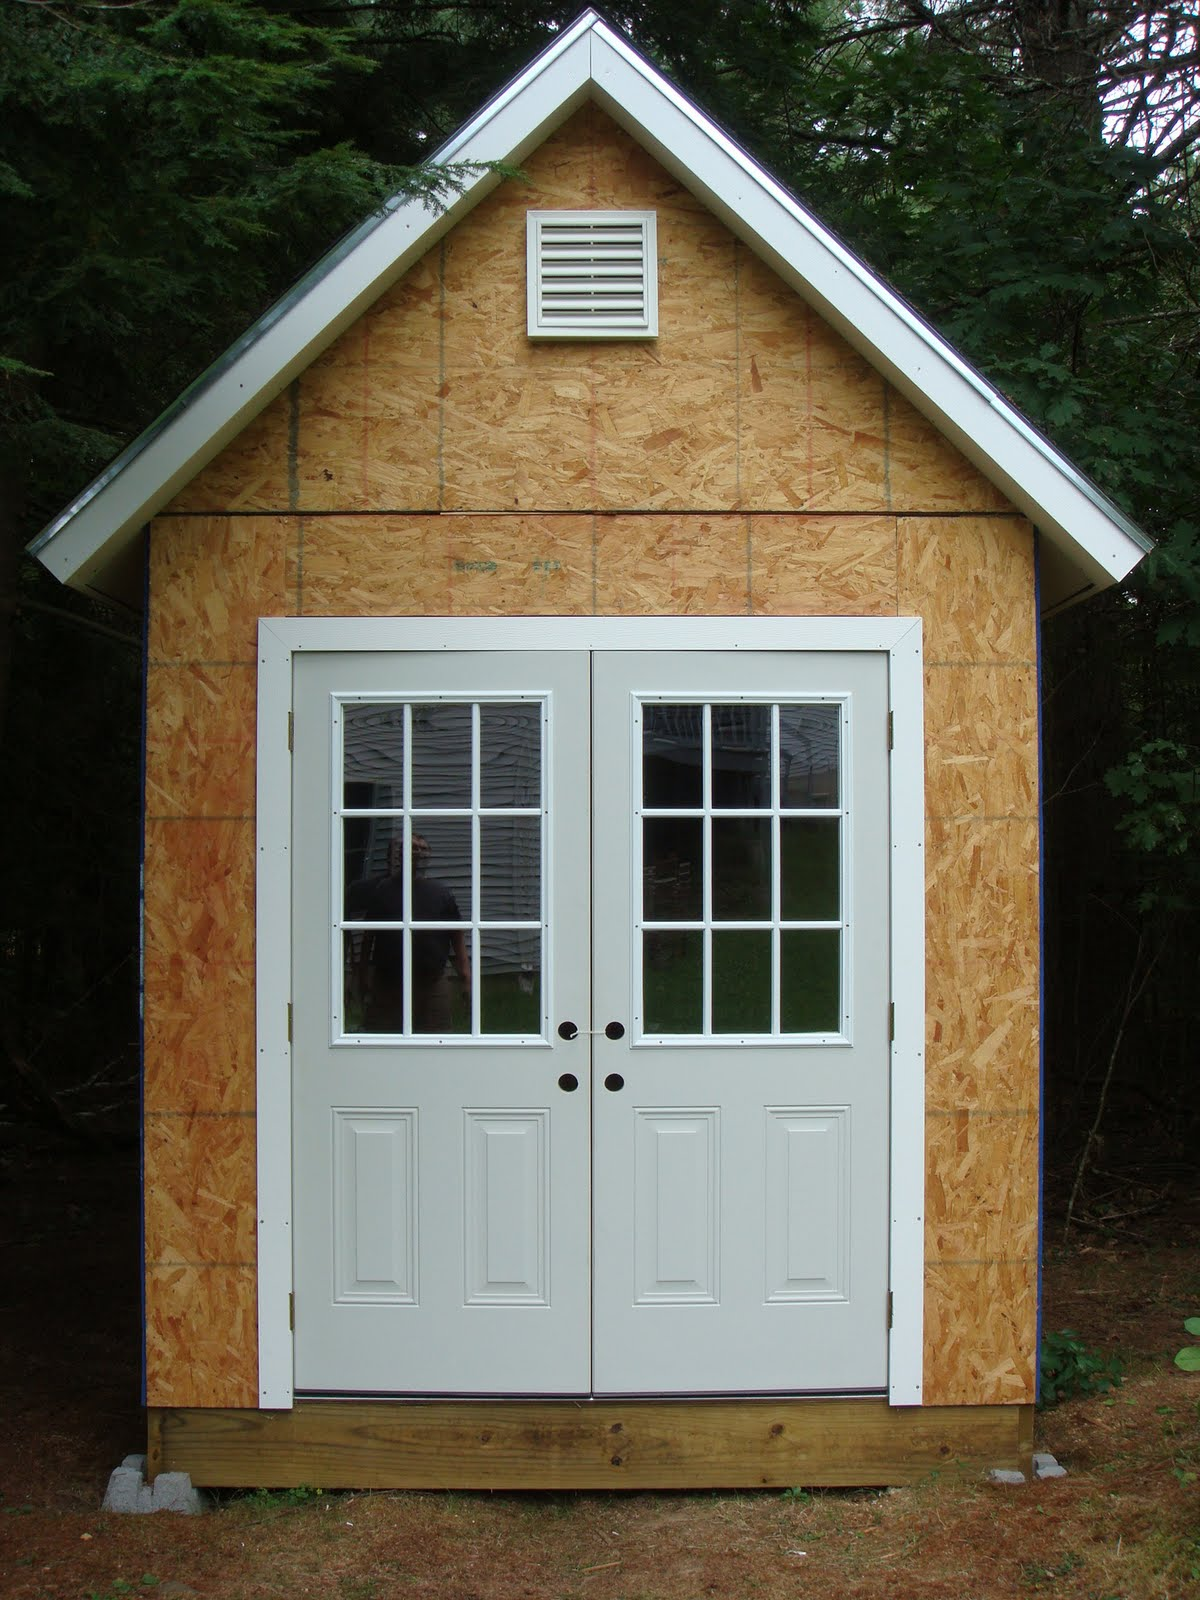 Diy building shed door design tips shed blueprints